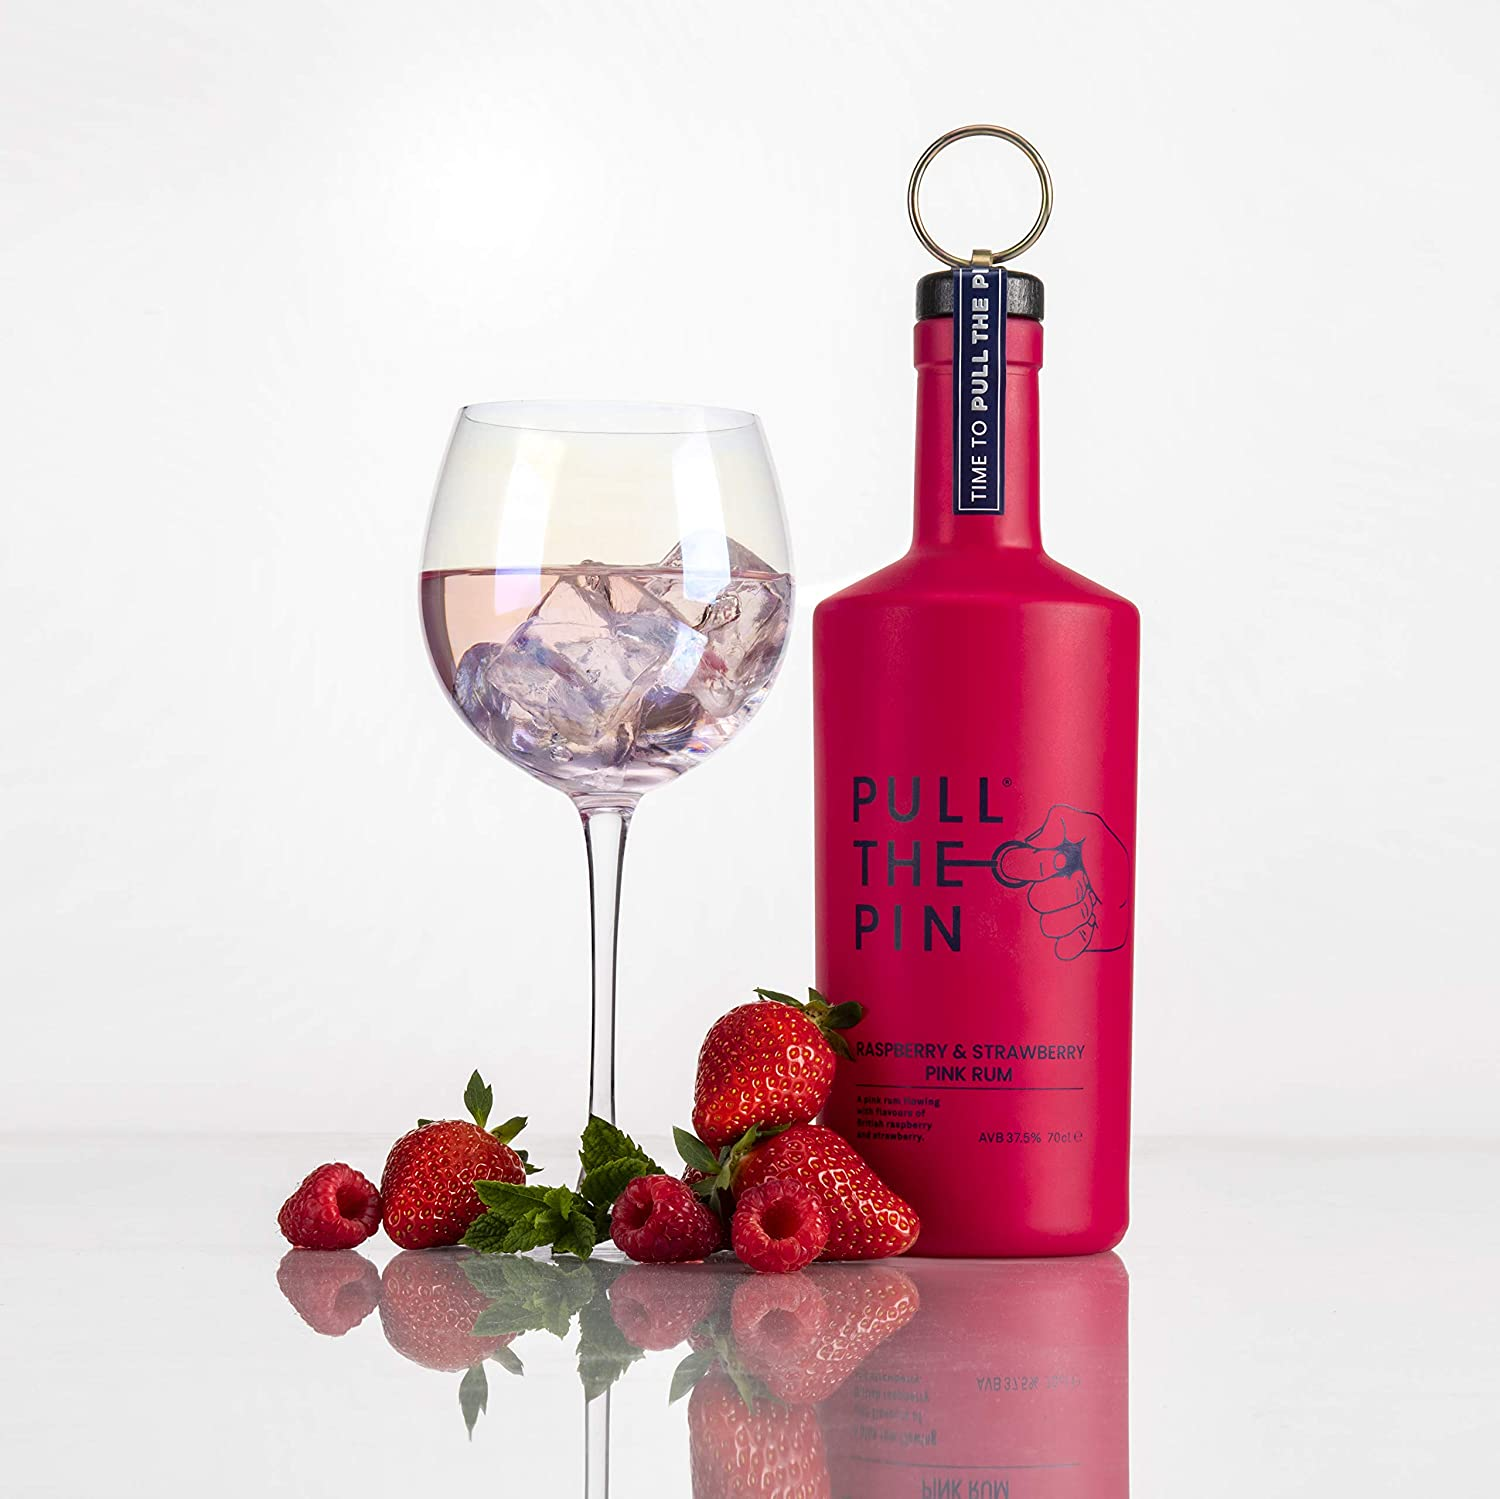 Pull The Pin Rum - Raspberry & Strawberry Pink Rum 70cl